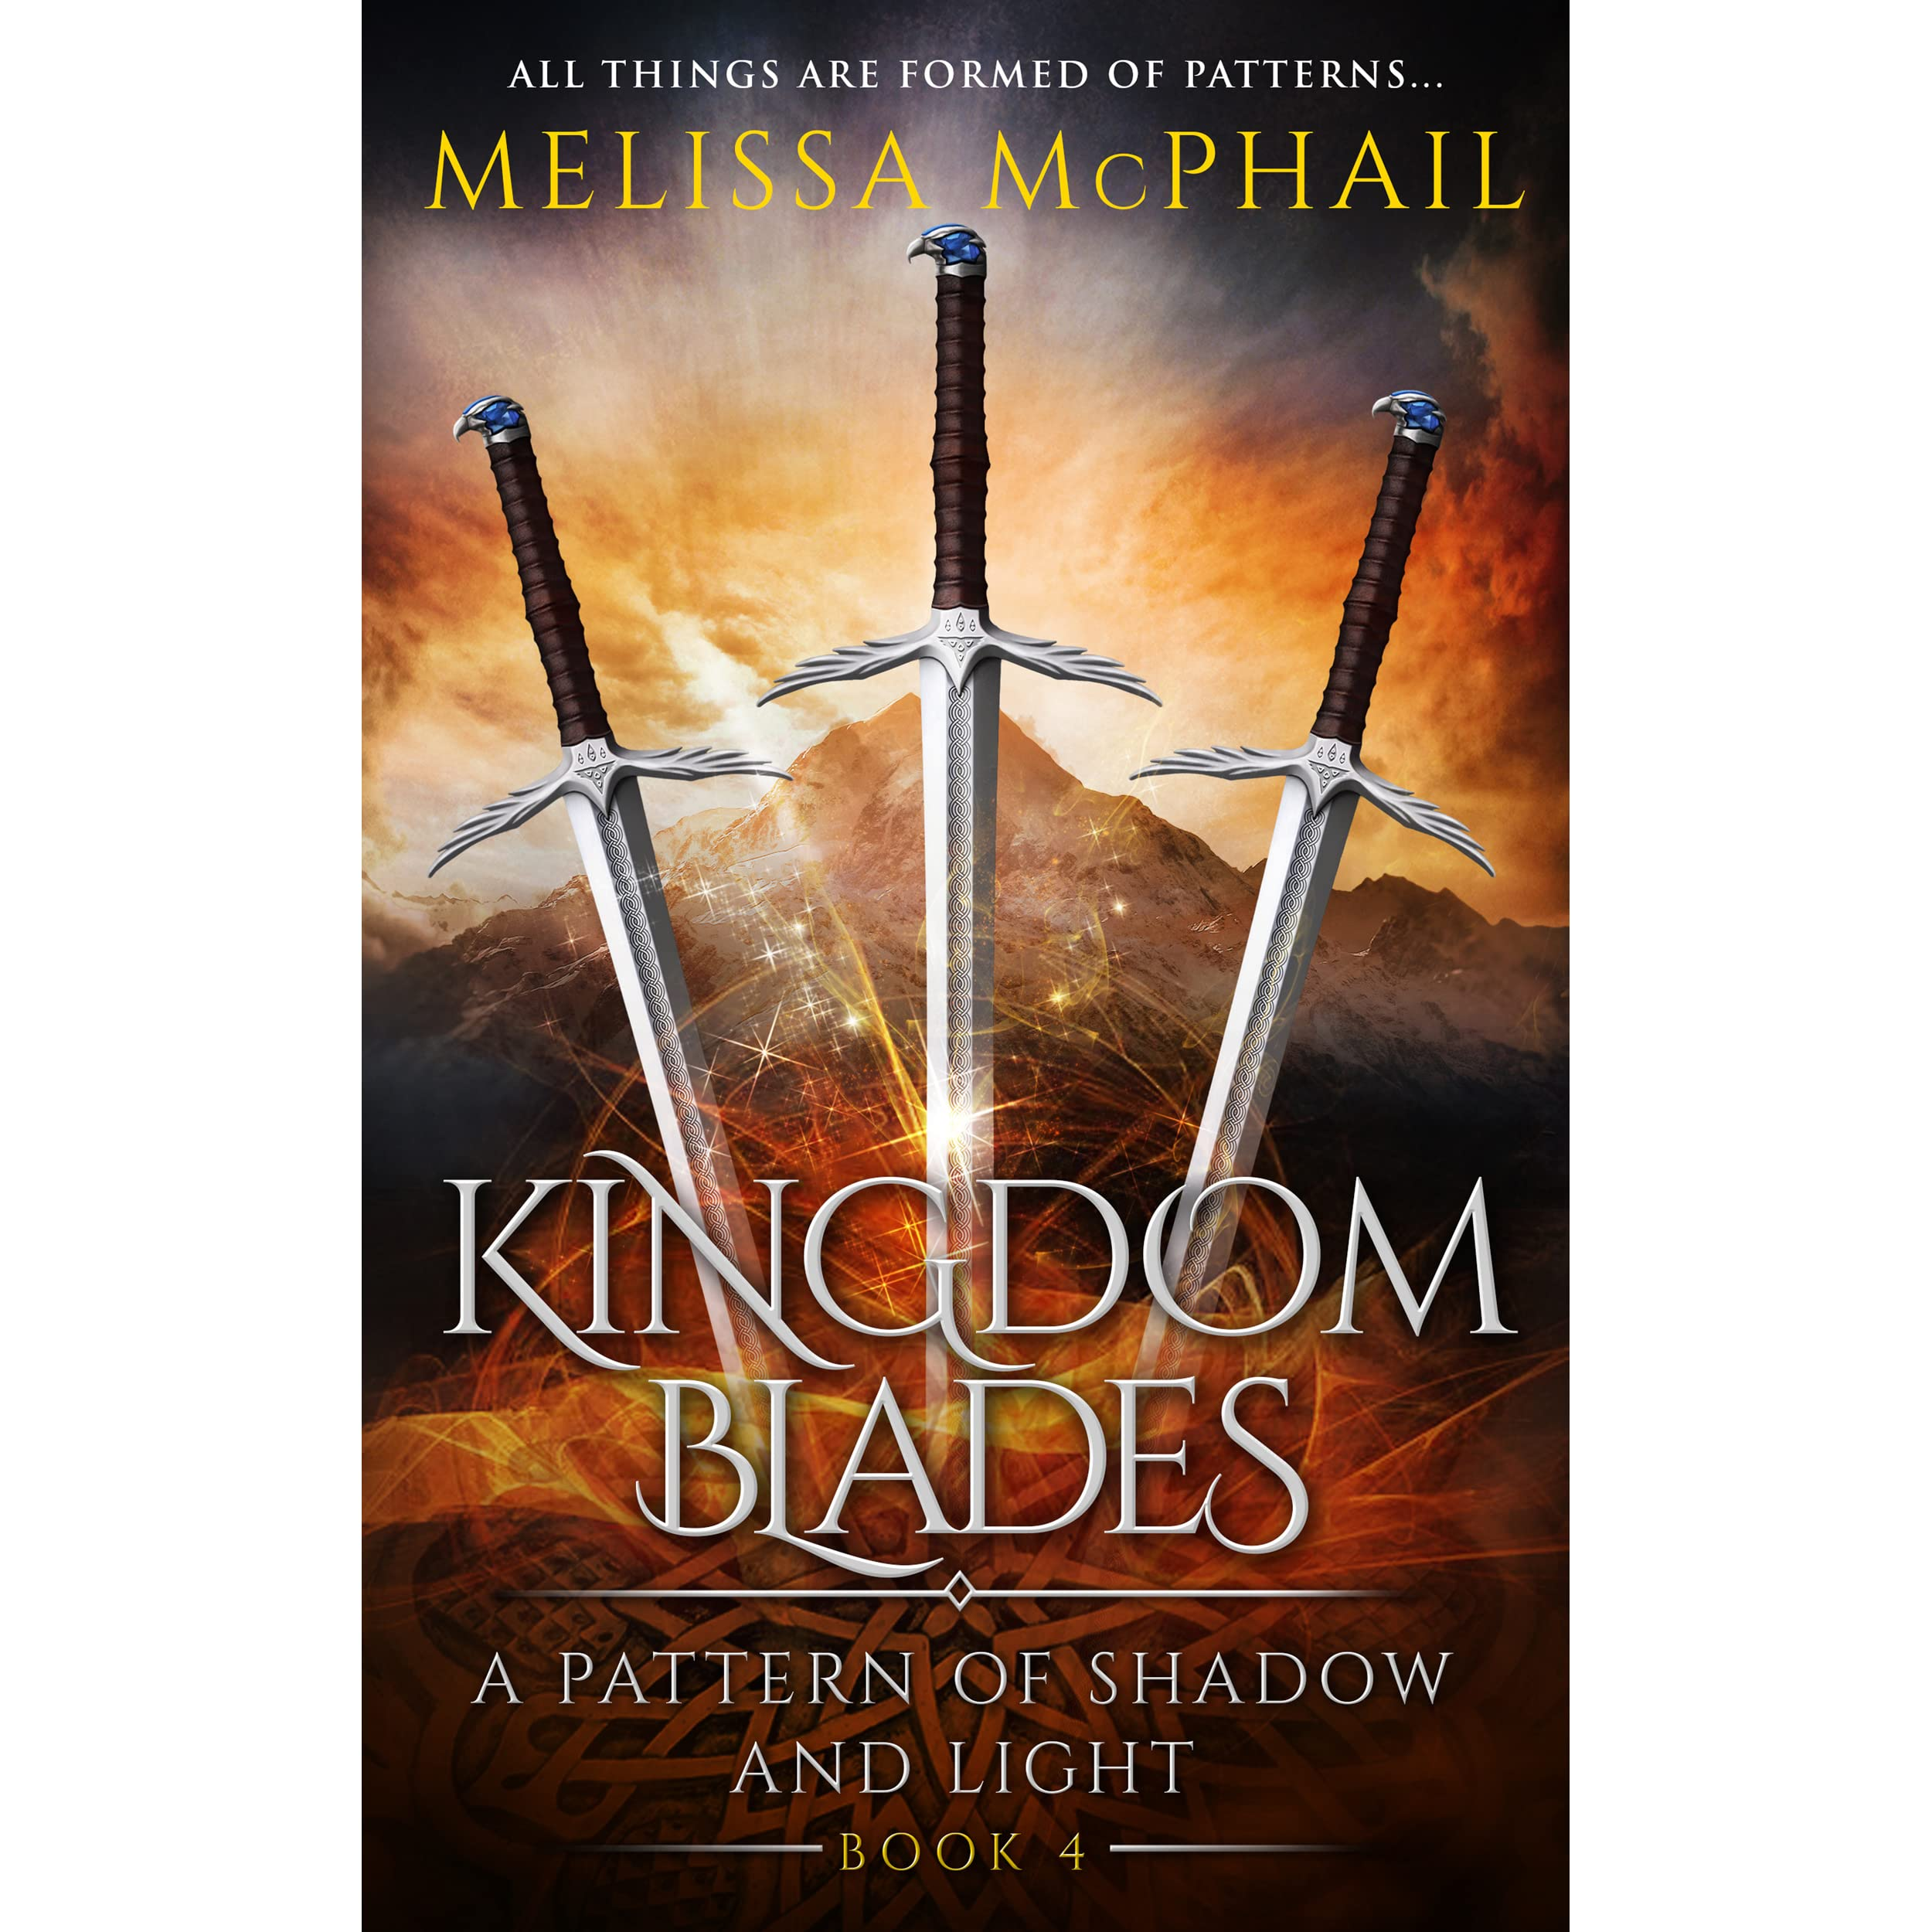 Kingdom Manga Goodreads: Kingdom Blades (A Pattern Of Shadow And Light, #4) By